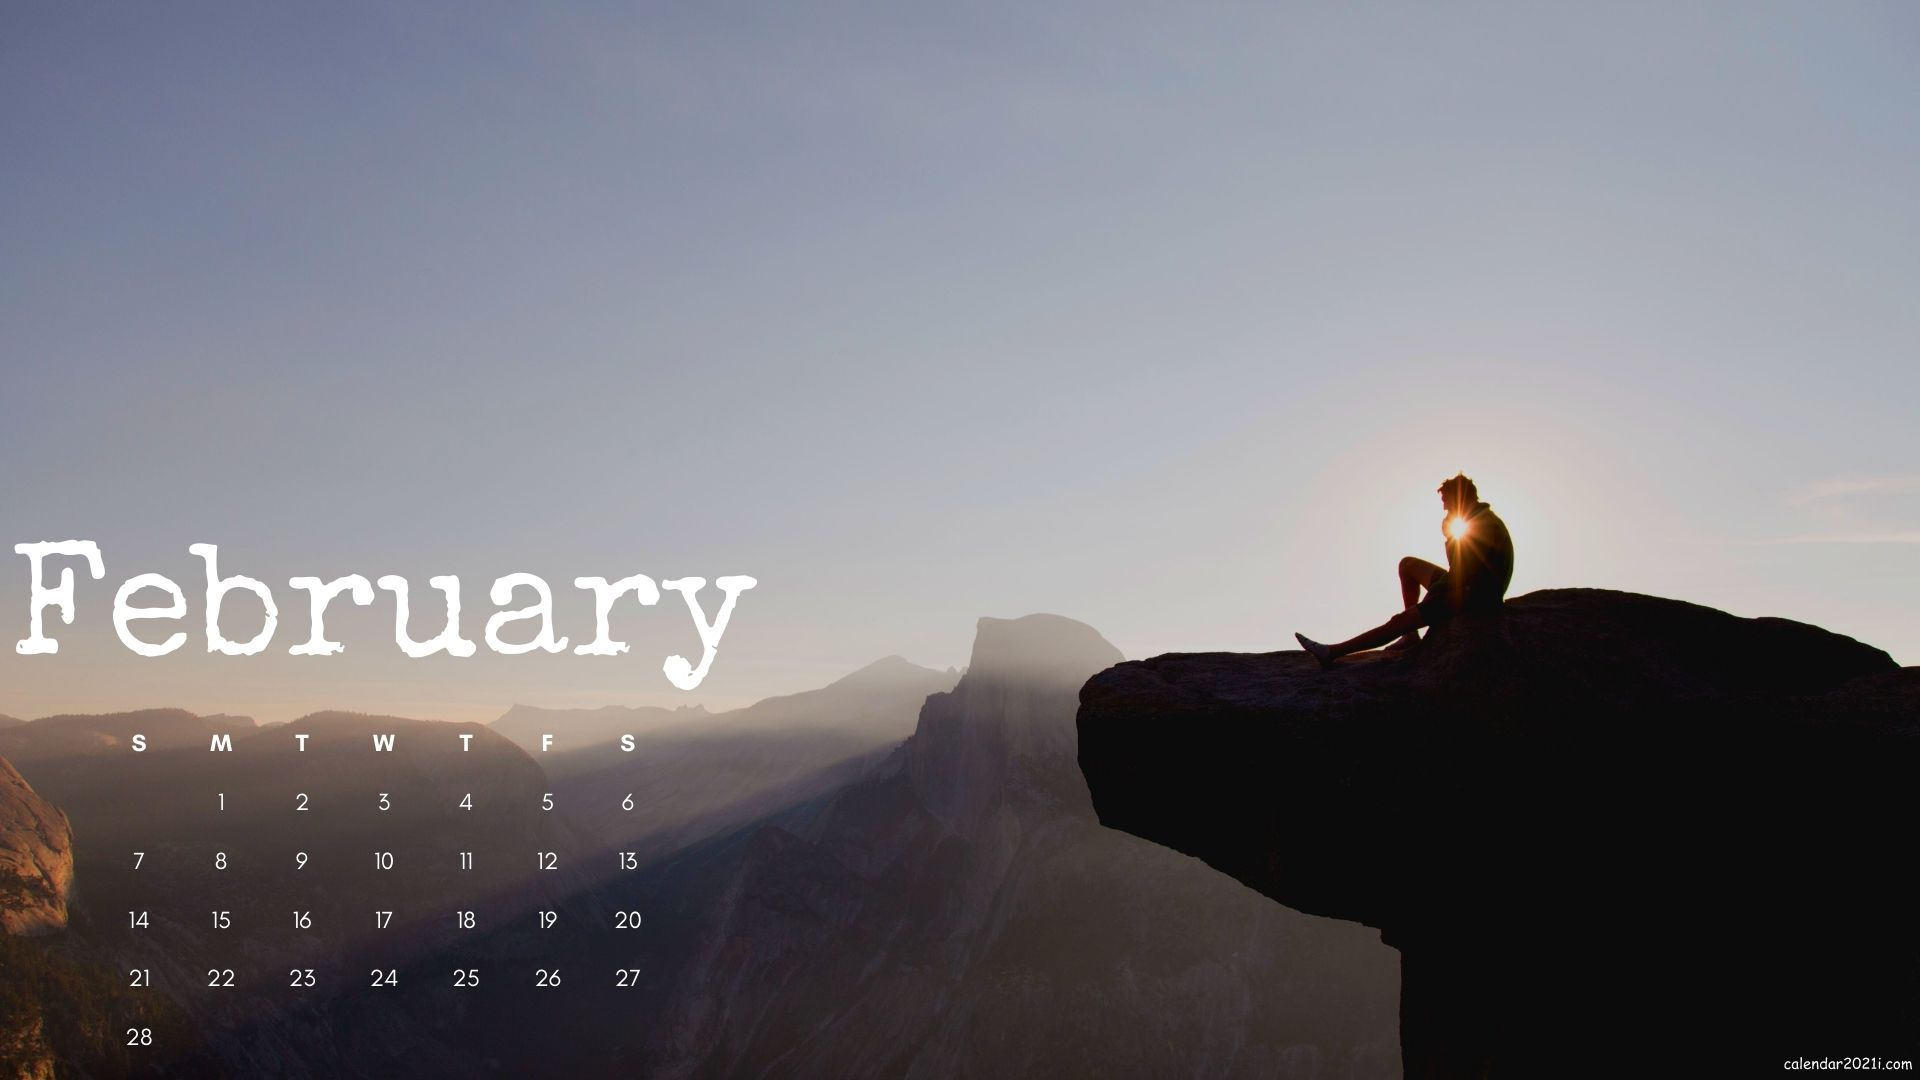 February 2021 Calendar Wallpapers Download Calendar 2021